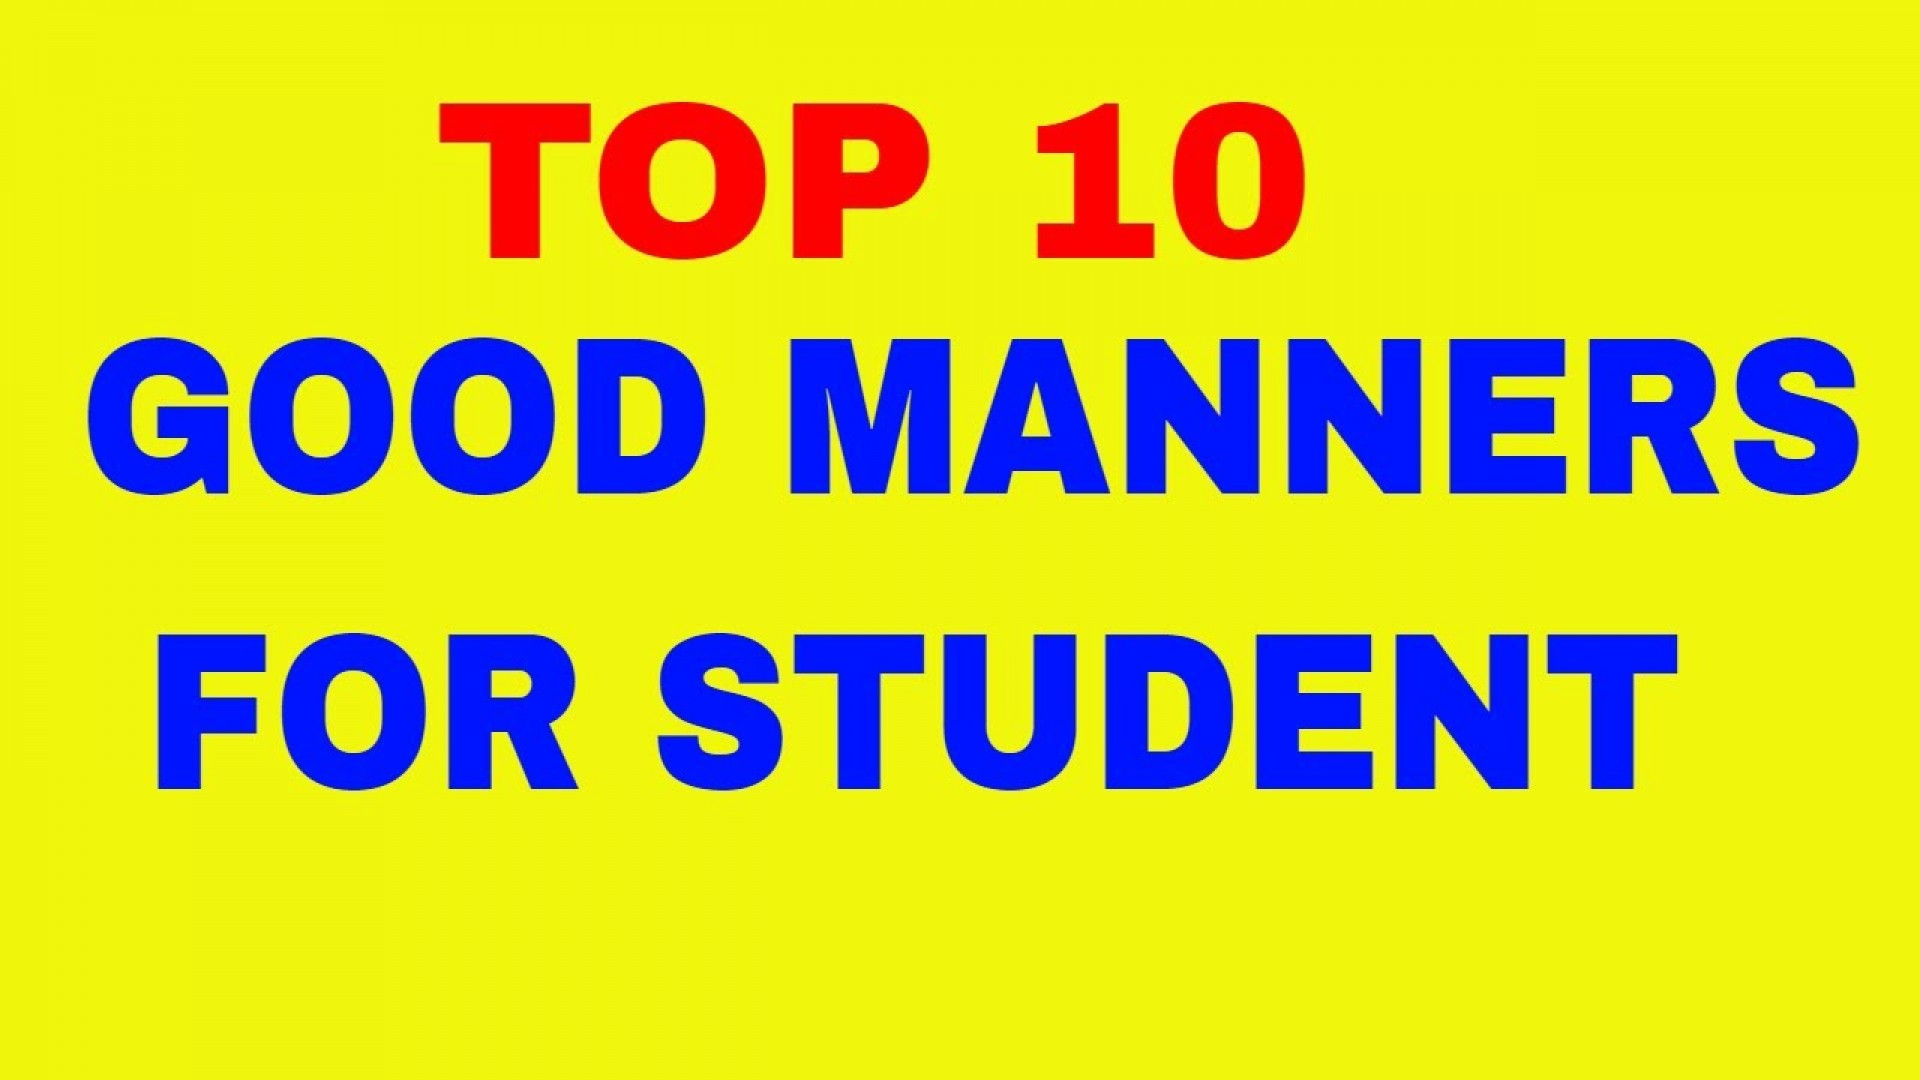 014 Maxresdefault Essay Example About Good Staggering A Student Responsibilities Of In Urdu Write An What Are The Quality Characteristics 1920